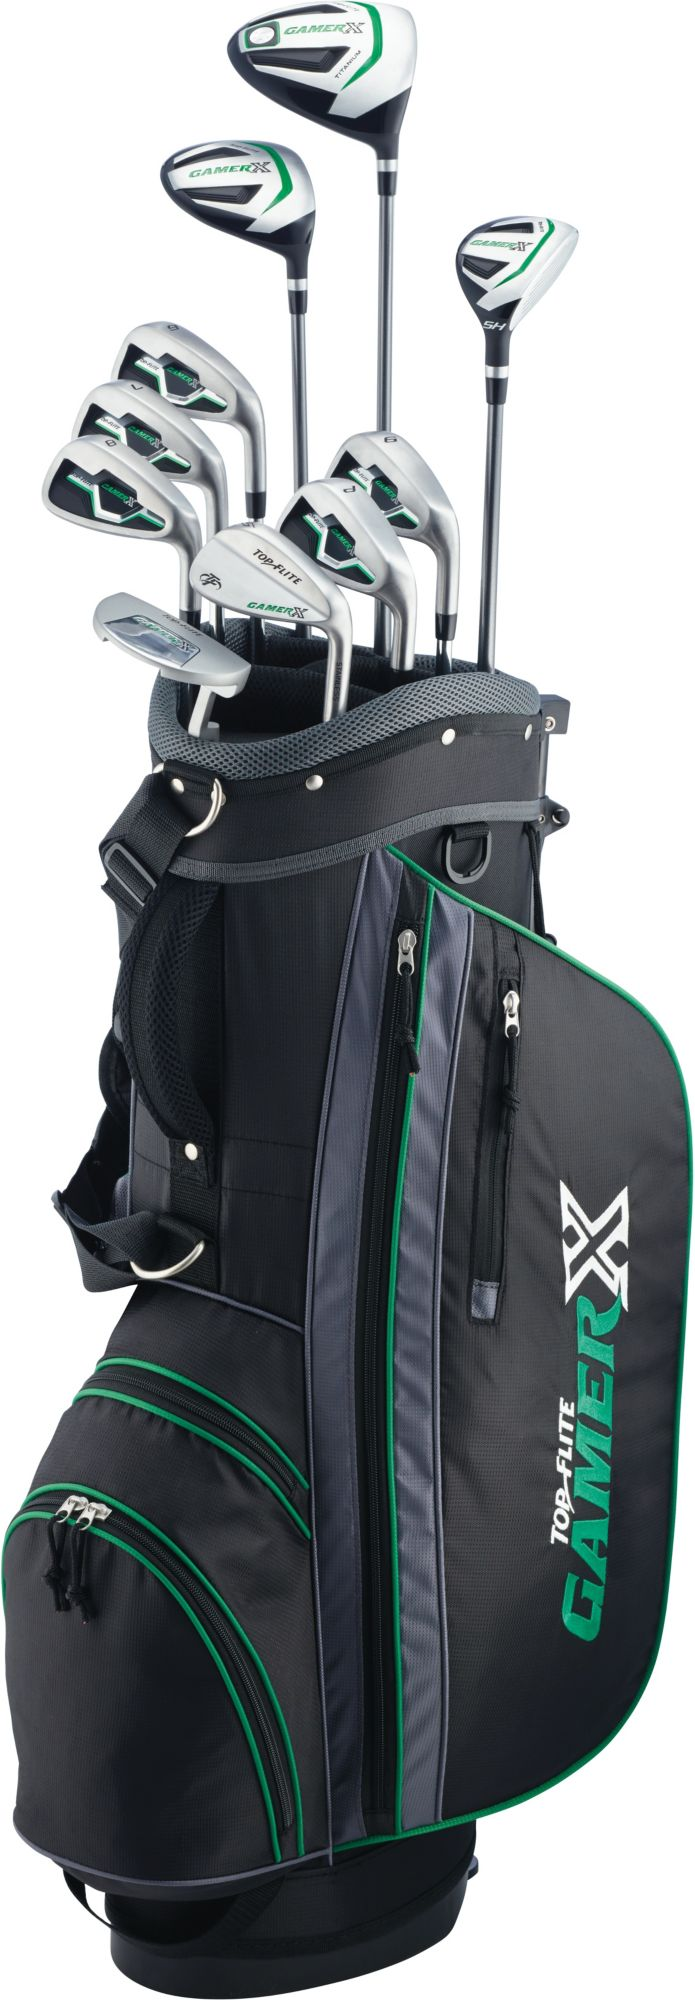 Kids Golf Club Sets-Top-Flight Kids 2019 Gamer X Varsity